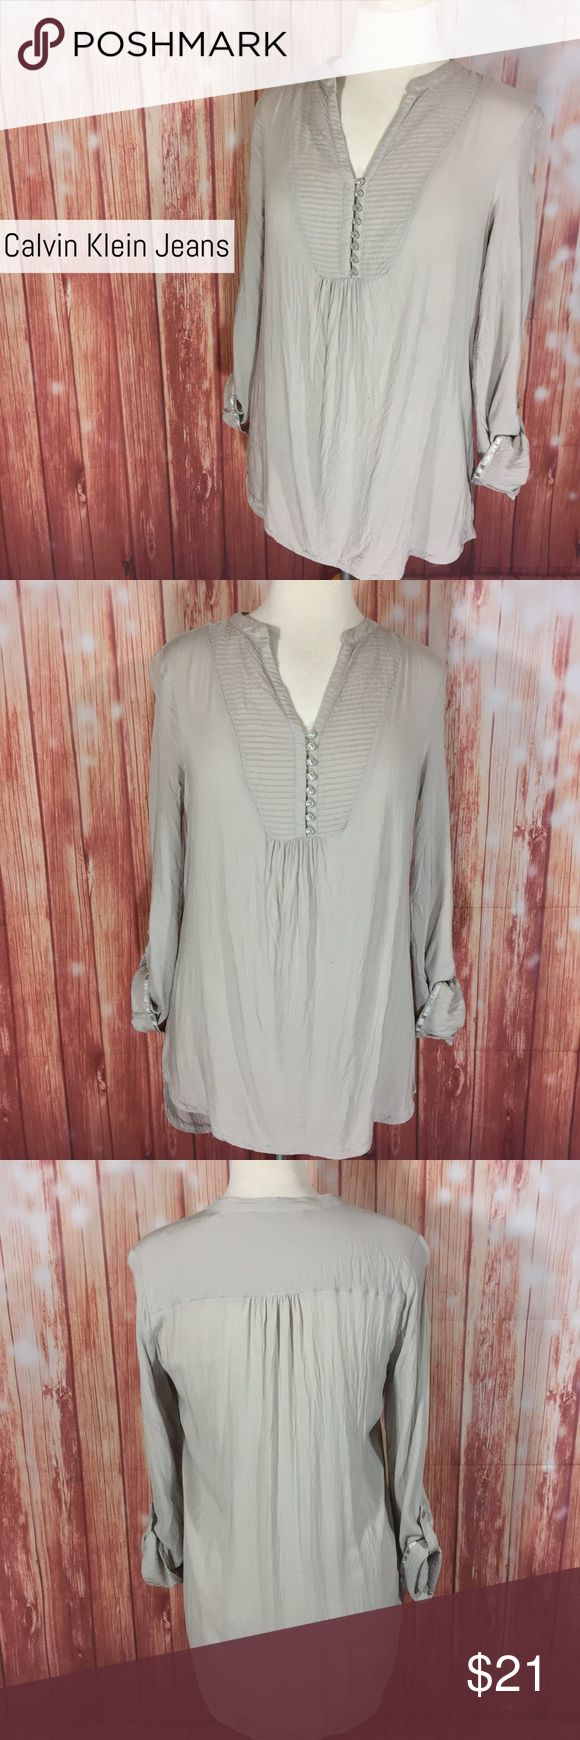 """Calvin Klein Jeans M GRAY RollTab longsleeve Tunic Calvin Klein Jeans pleated Roll-Tab long sleeve tunic top Size Medium (measurements in comments) Gray color Soft, light weight material  1 Small """"pull"""" on bottom back NO OTHER DEFECTS  •This Top is very versatile! Wear with boot cut jeans & black boots! •Wear with skinny jeans & booties for a night out! •Wear with a gray or black maxi skirt & Ballet flats for a relaxed but chic look! ~~~~~~~~ Pet friendly home  Smoker but not in the home…"""